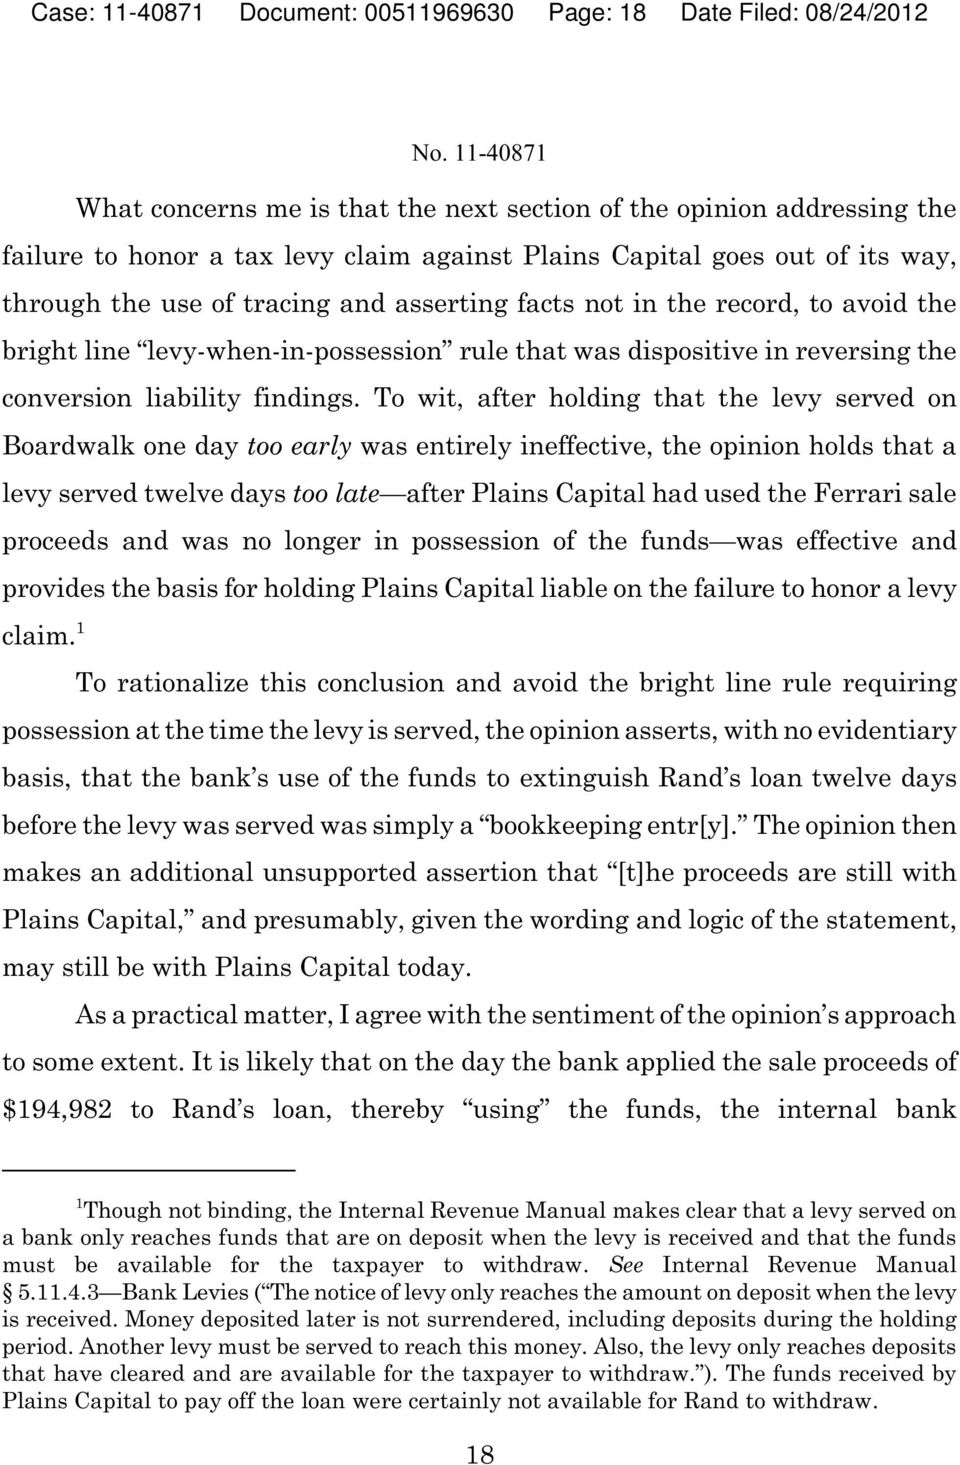 Capital goes out of its way, through the use of tracing and asserting facts not in the record, to avoid the bright line levy-when-in-possession rule that was dispositive in reversing the conversion